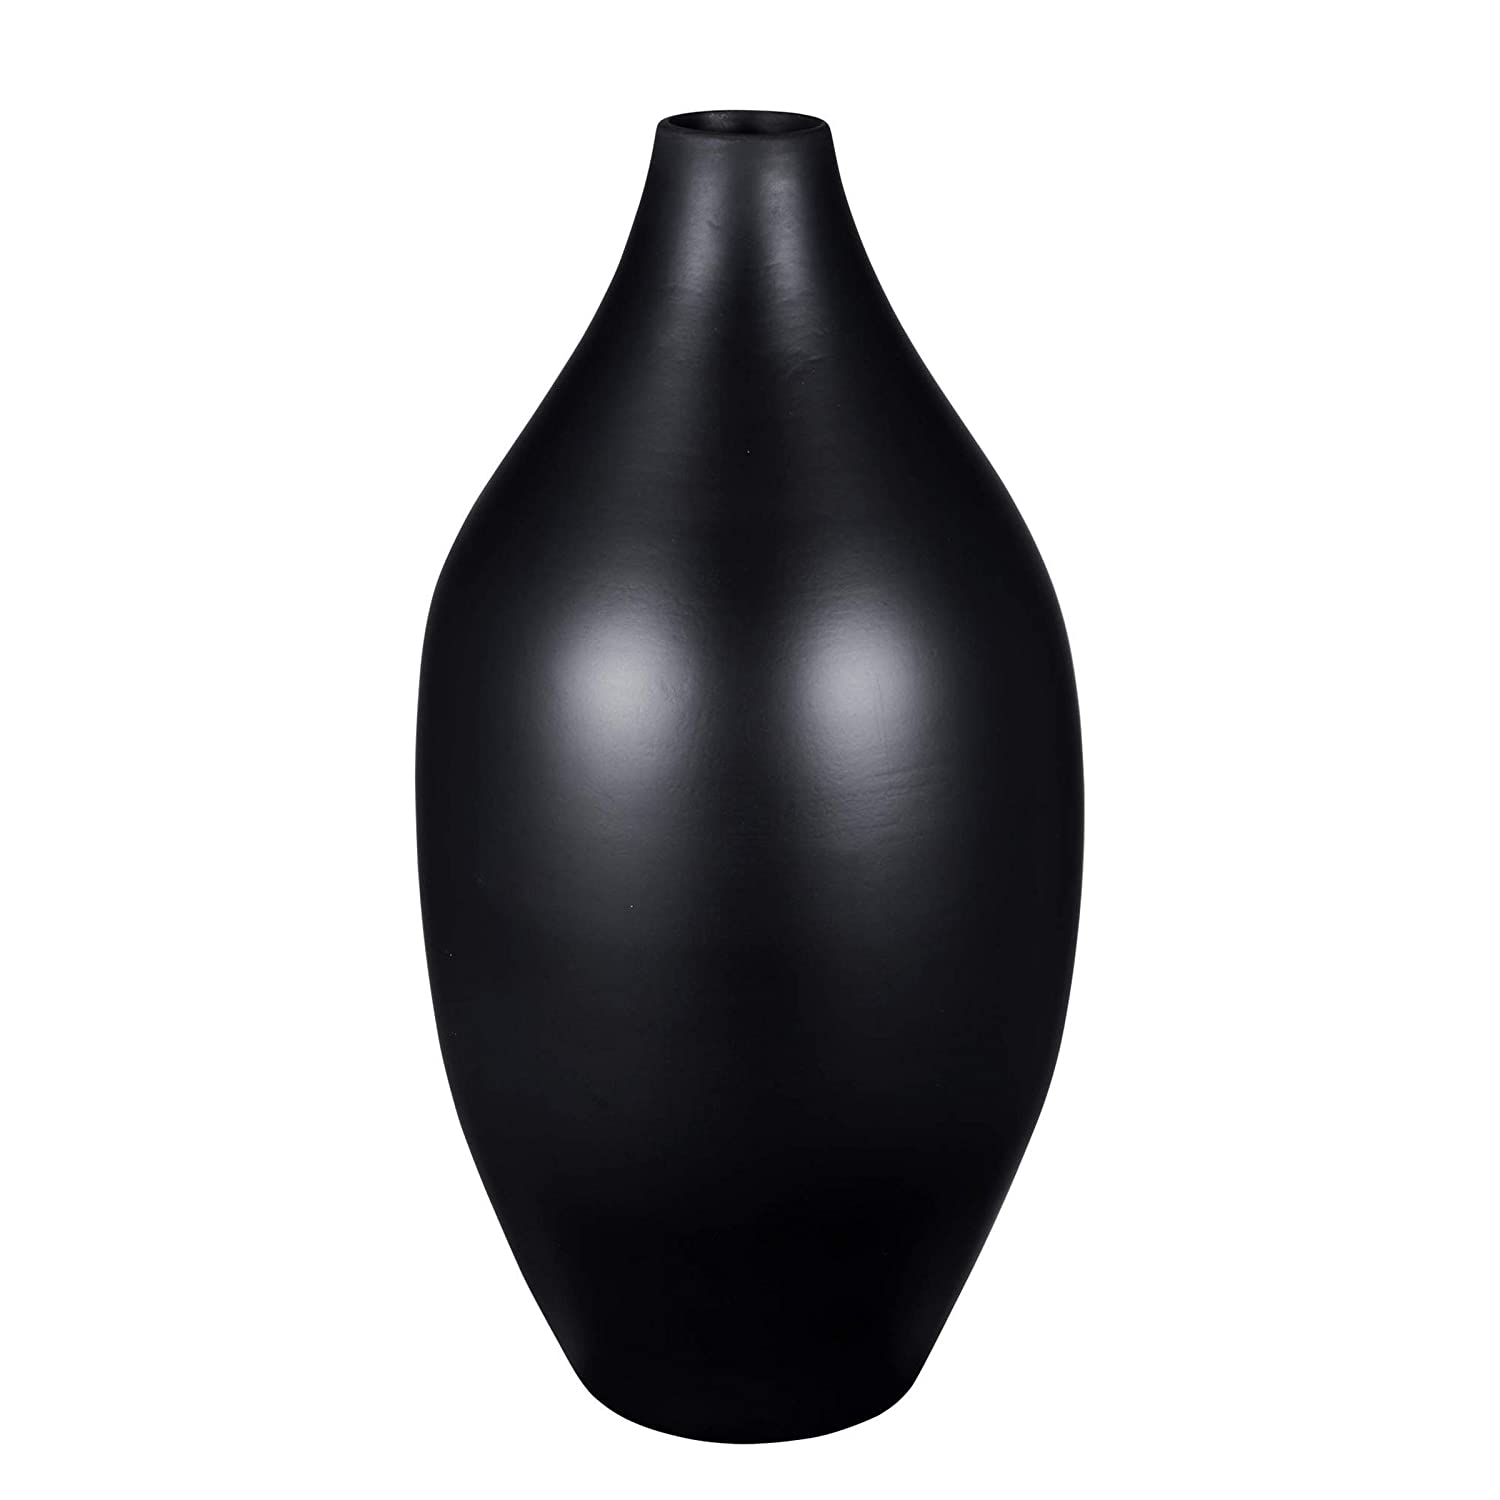 "Filler Decor Sustainable Bamboo Villacera Handcrafted 16/"" Tall Black Glazed Gourd Vase for Silk Plants Flowers"